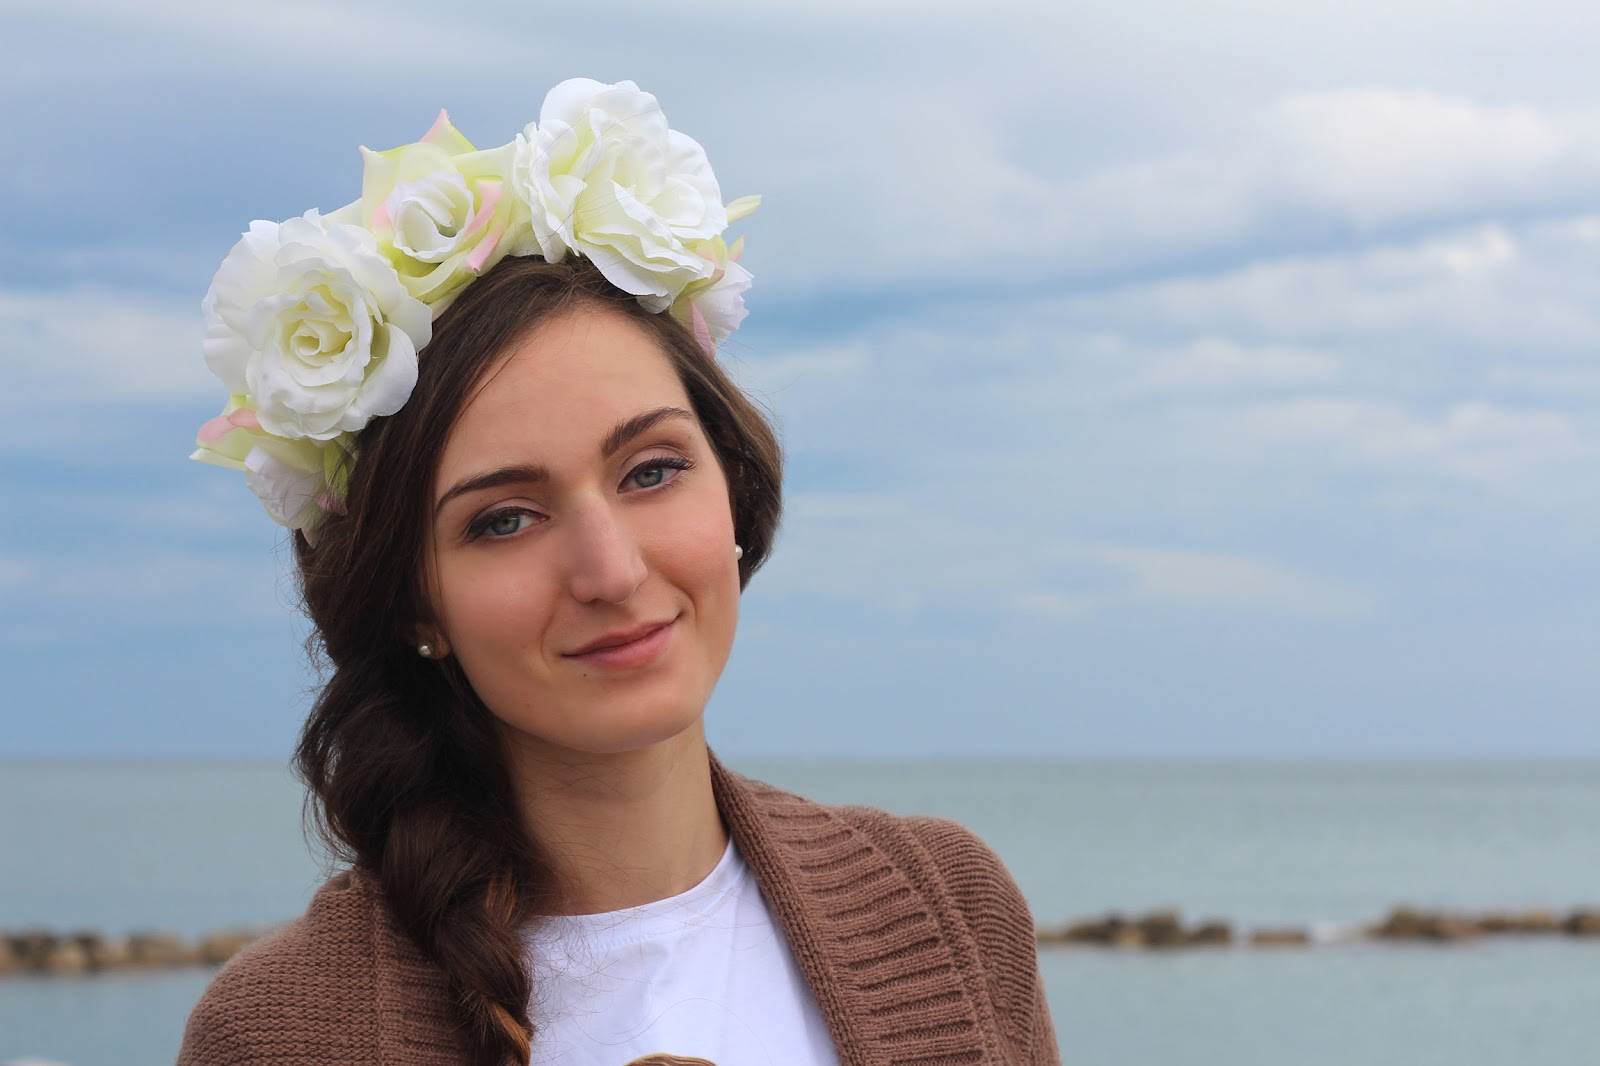 fashion blogger pescara girl italian style outfit floral crown siamoises t-shirt white brown jeffry campbell